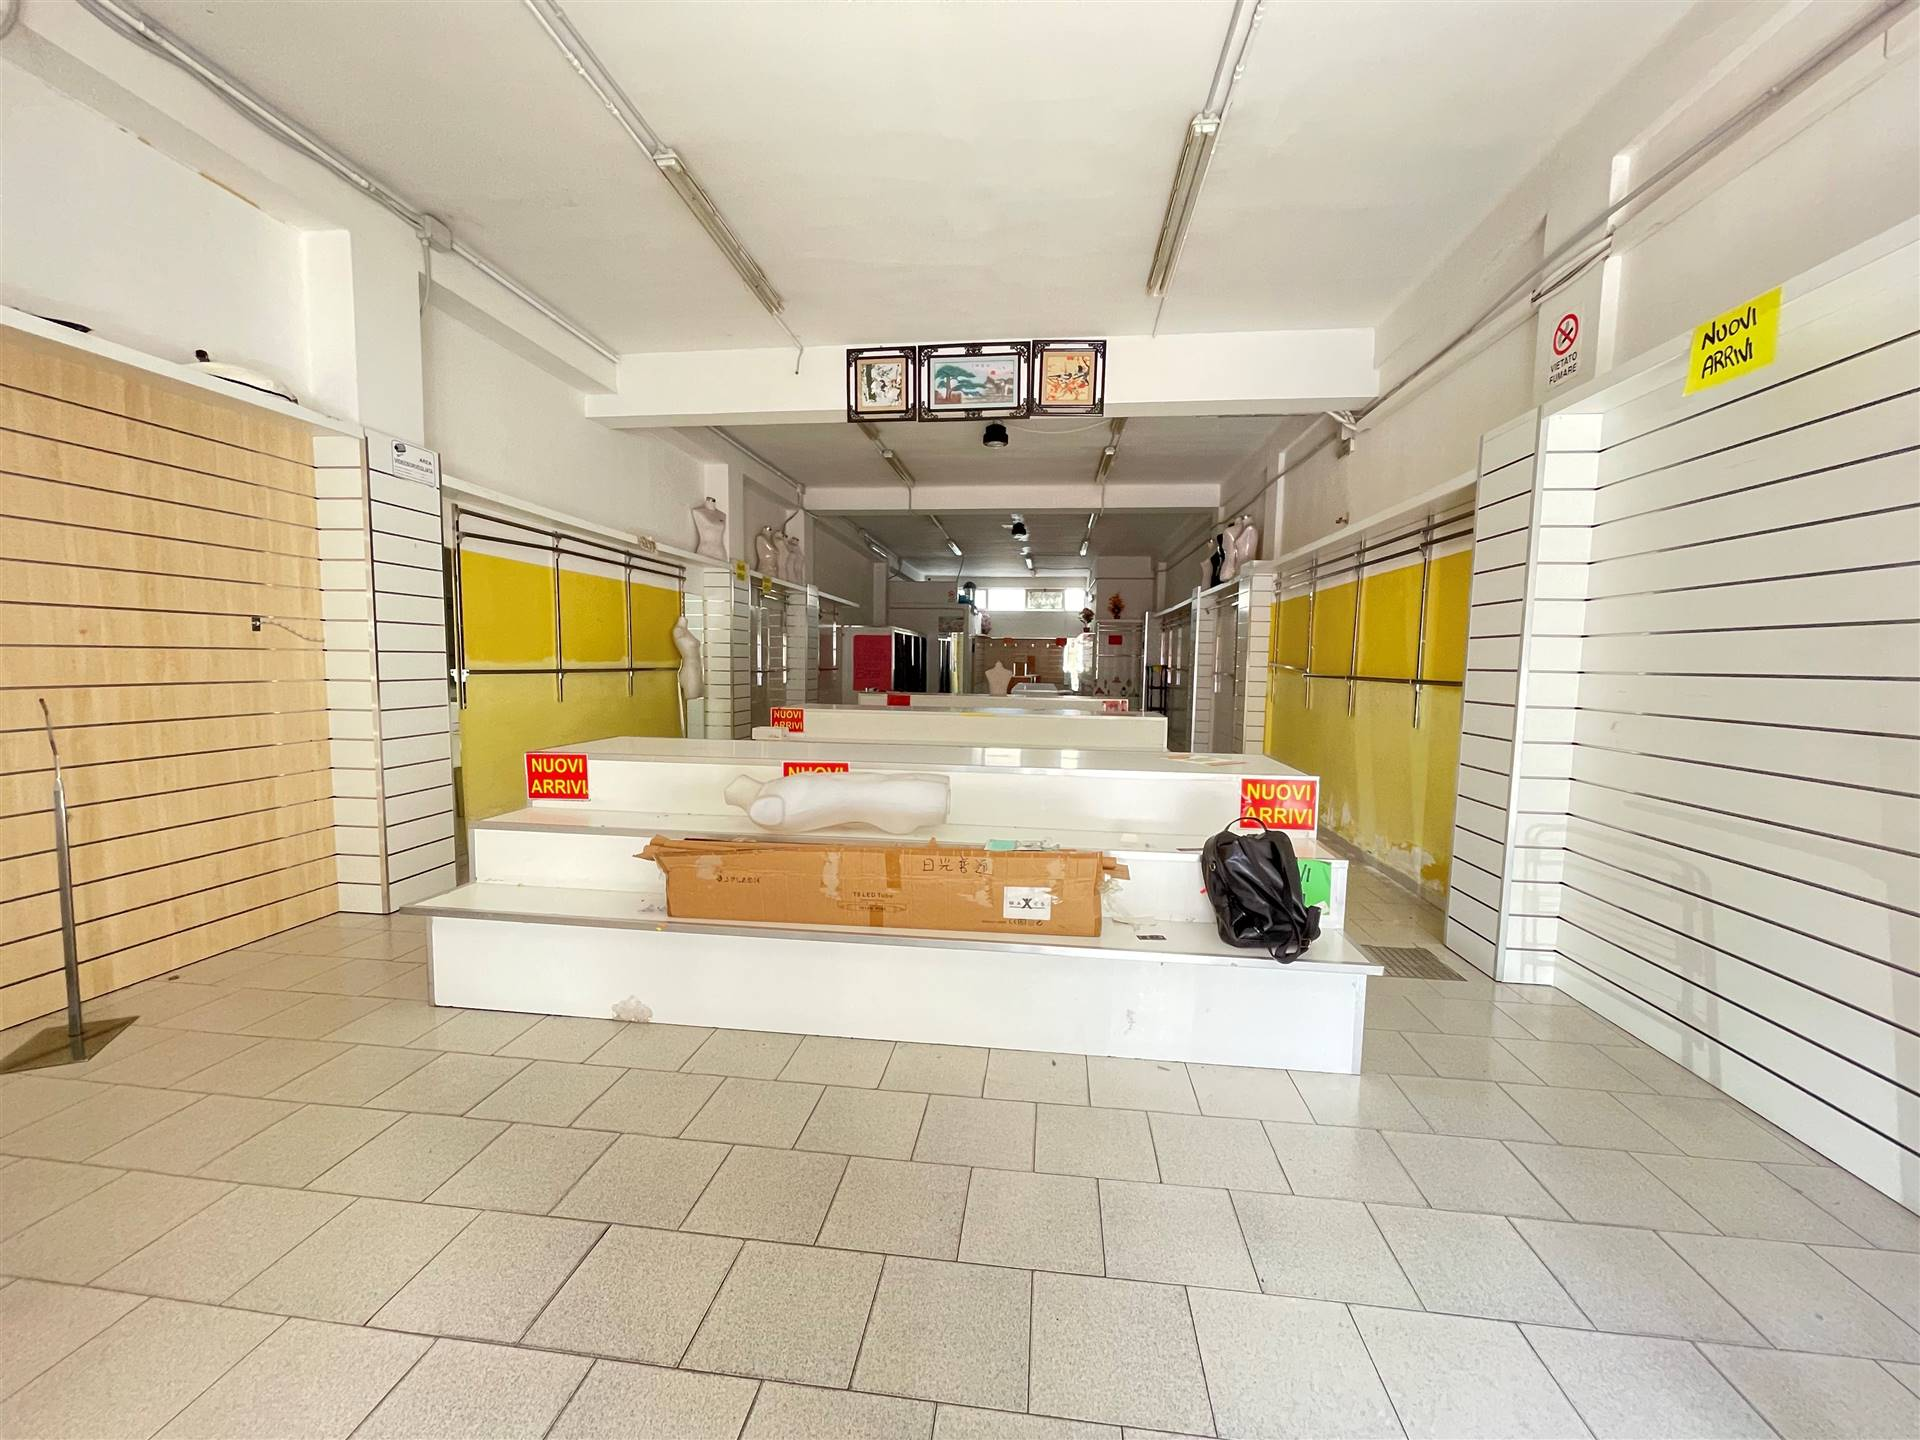 EST, LECCE, Commercialproperty for rent, Good condition, Energetic class: G, Epi: 88,15 kwh/m3 year, placed at Ground, composed by: 1 Room, 1